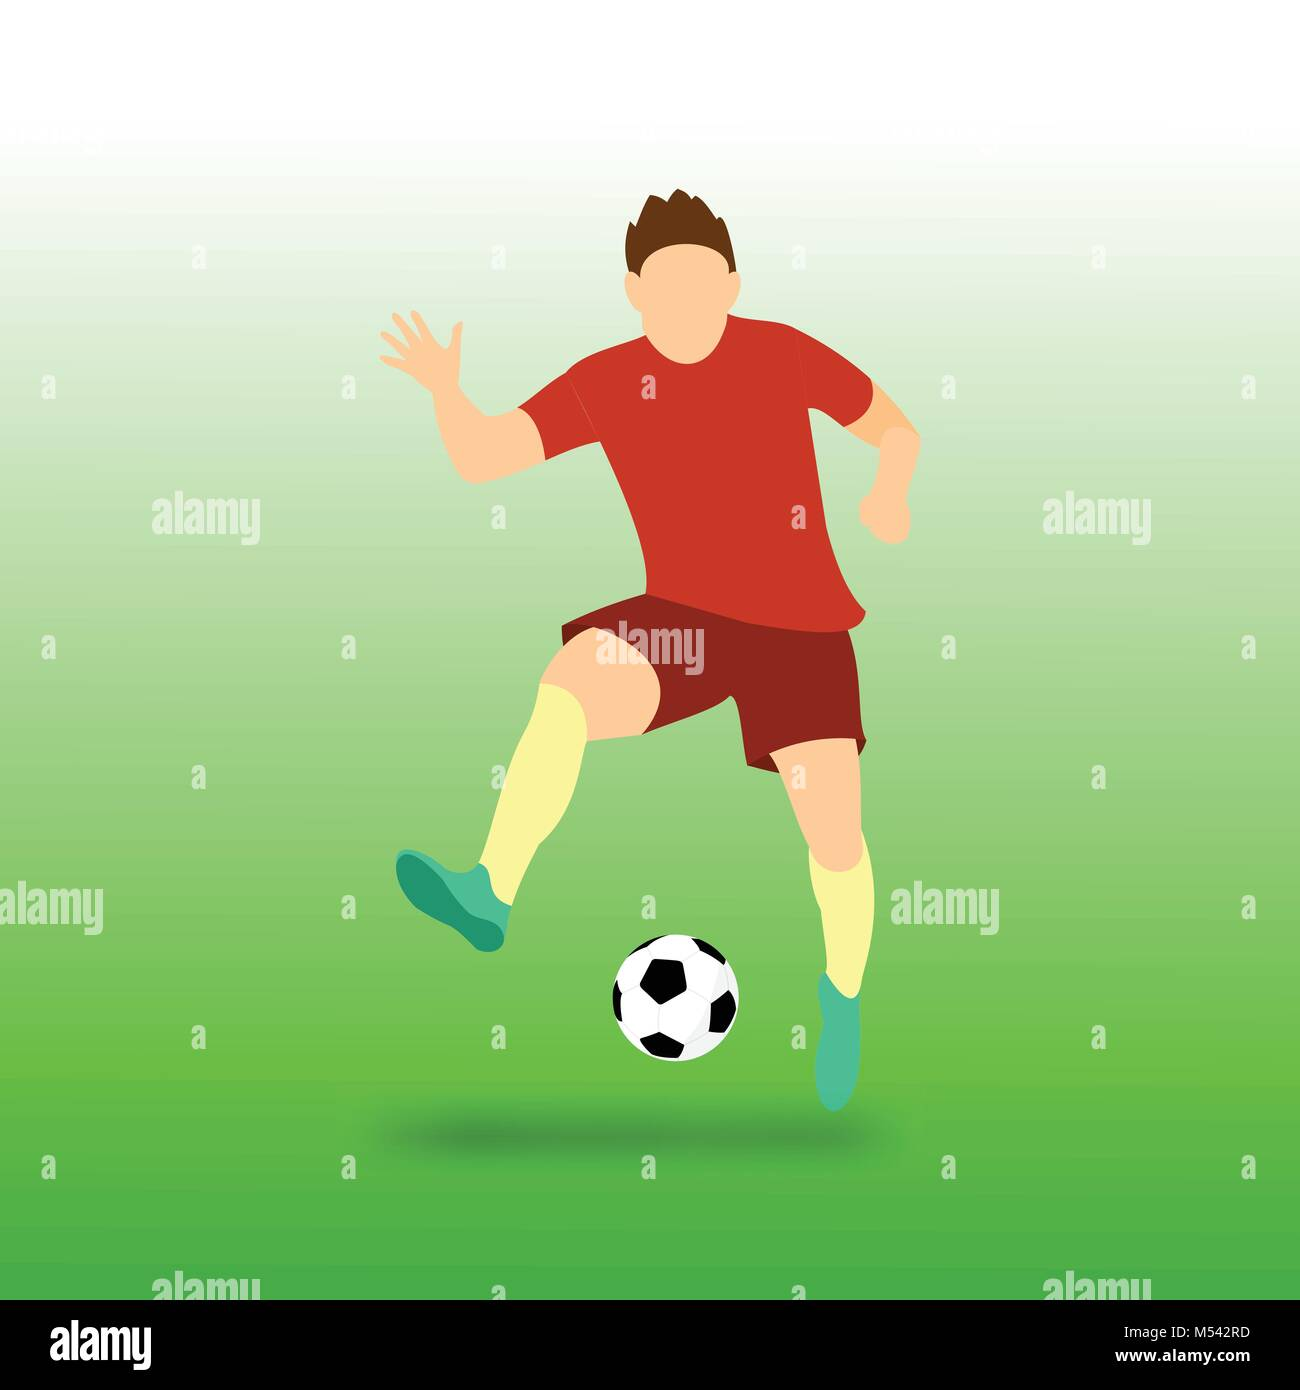 Freestyle Football Soccer Player Vector Illustration Graphic Design - Stock Vector